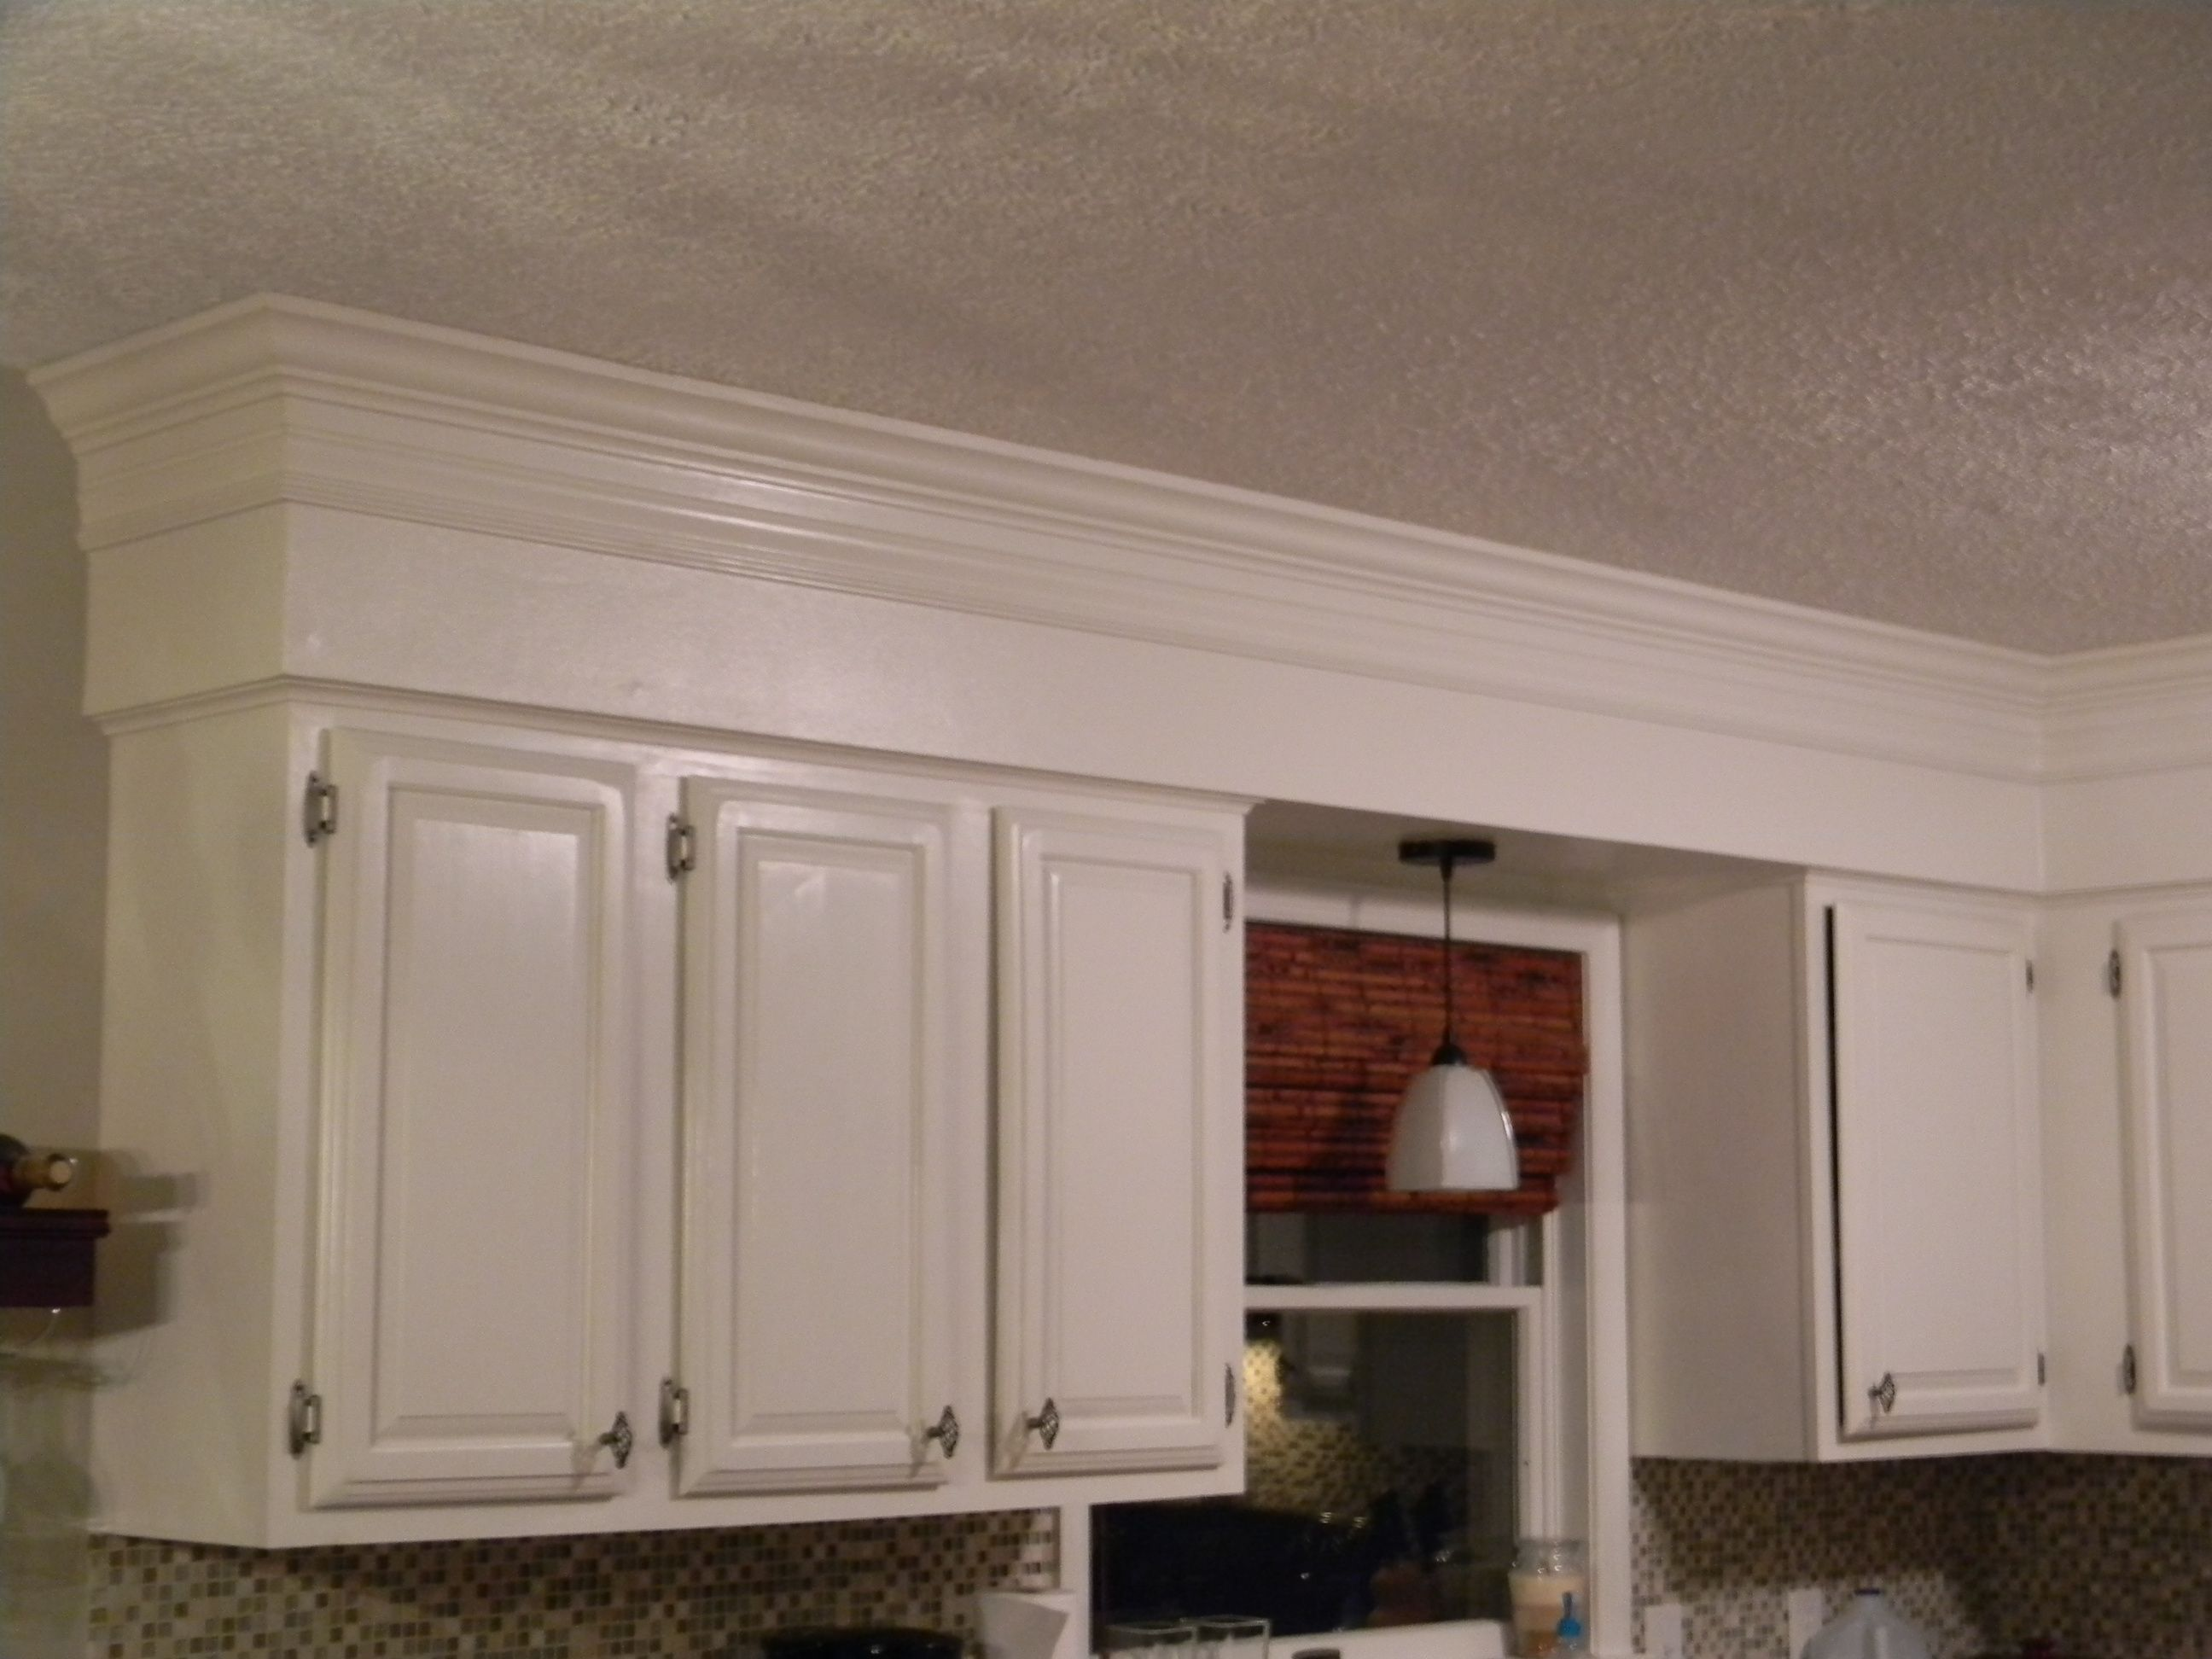 Adding Crown Molding To Kitchen Cabinets Photo Of 50 Crown Molding Above Kitchen  Cabinets Homedesignproducts Tk Minimalist